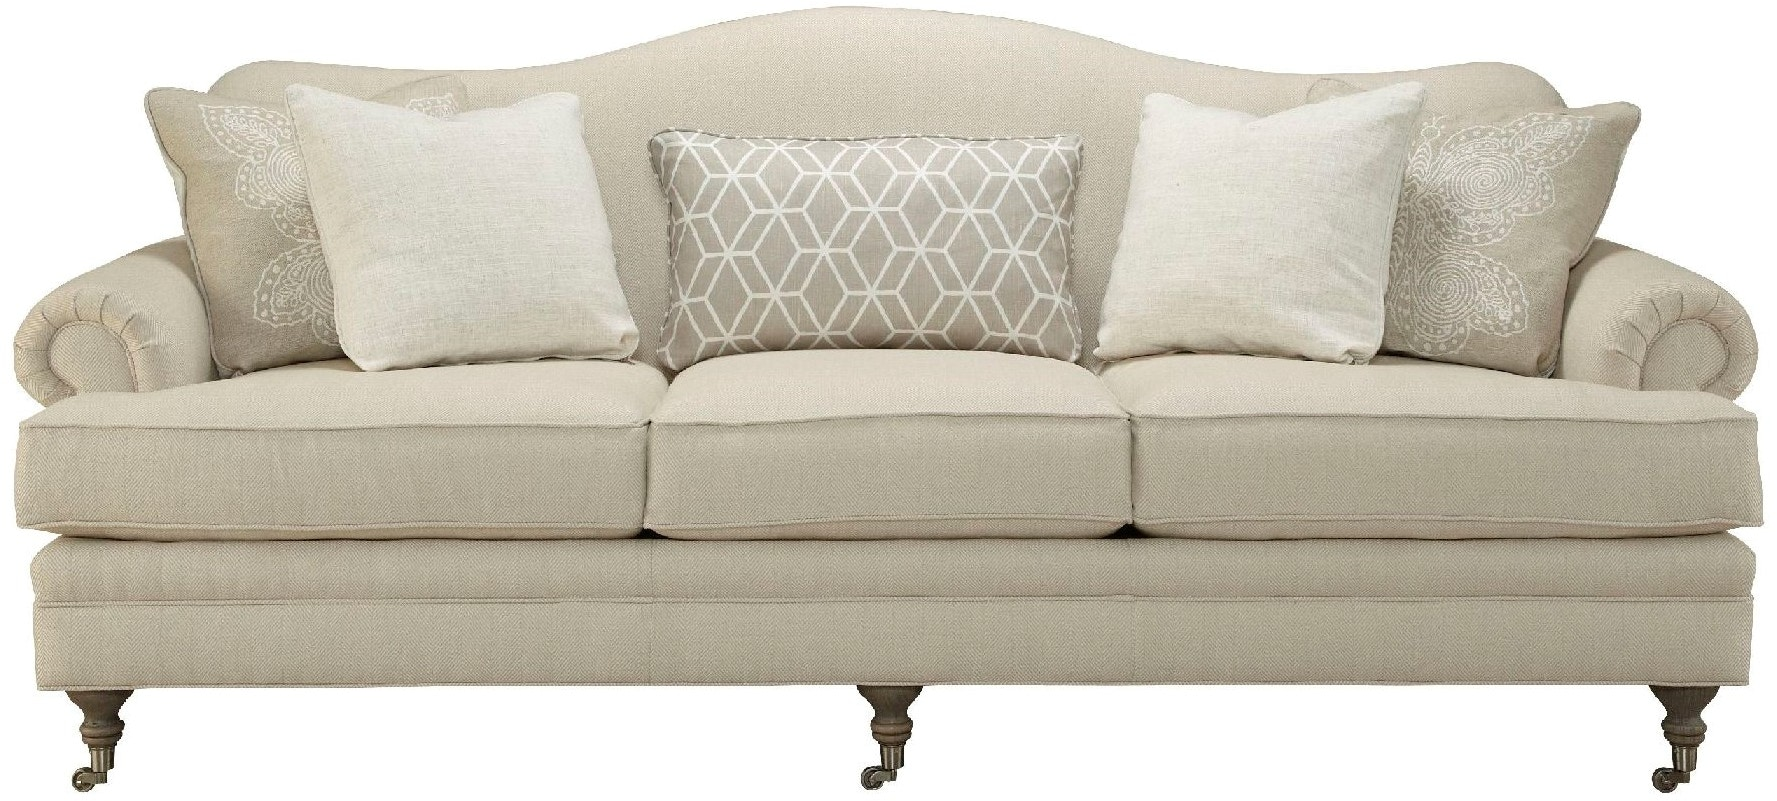 Southern Furniture Living Room Elmore Southern Furniture Living Room Harrison Sofa 22051